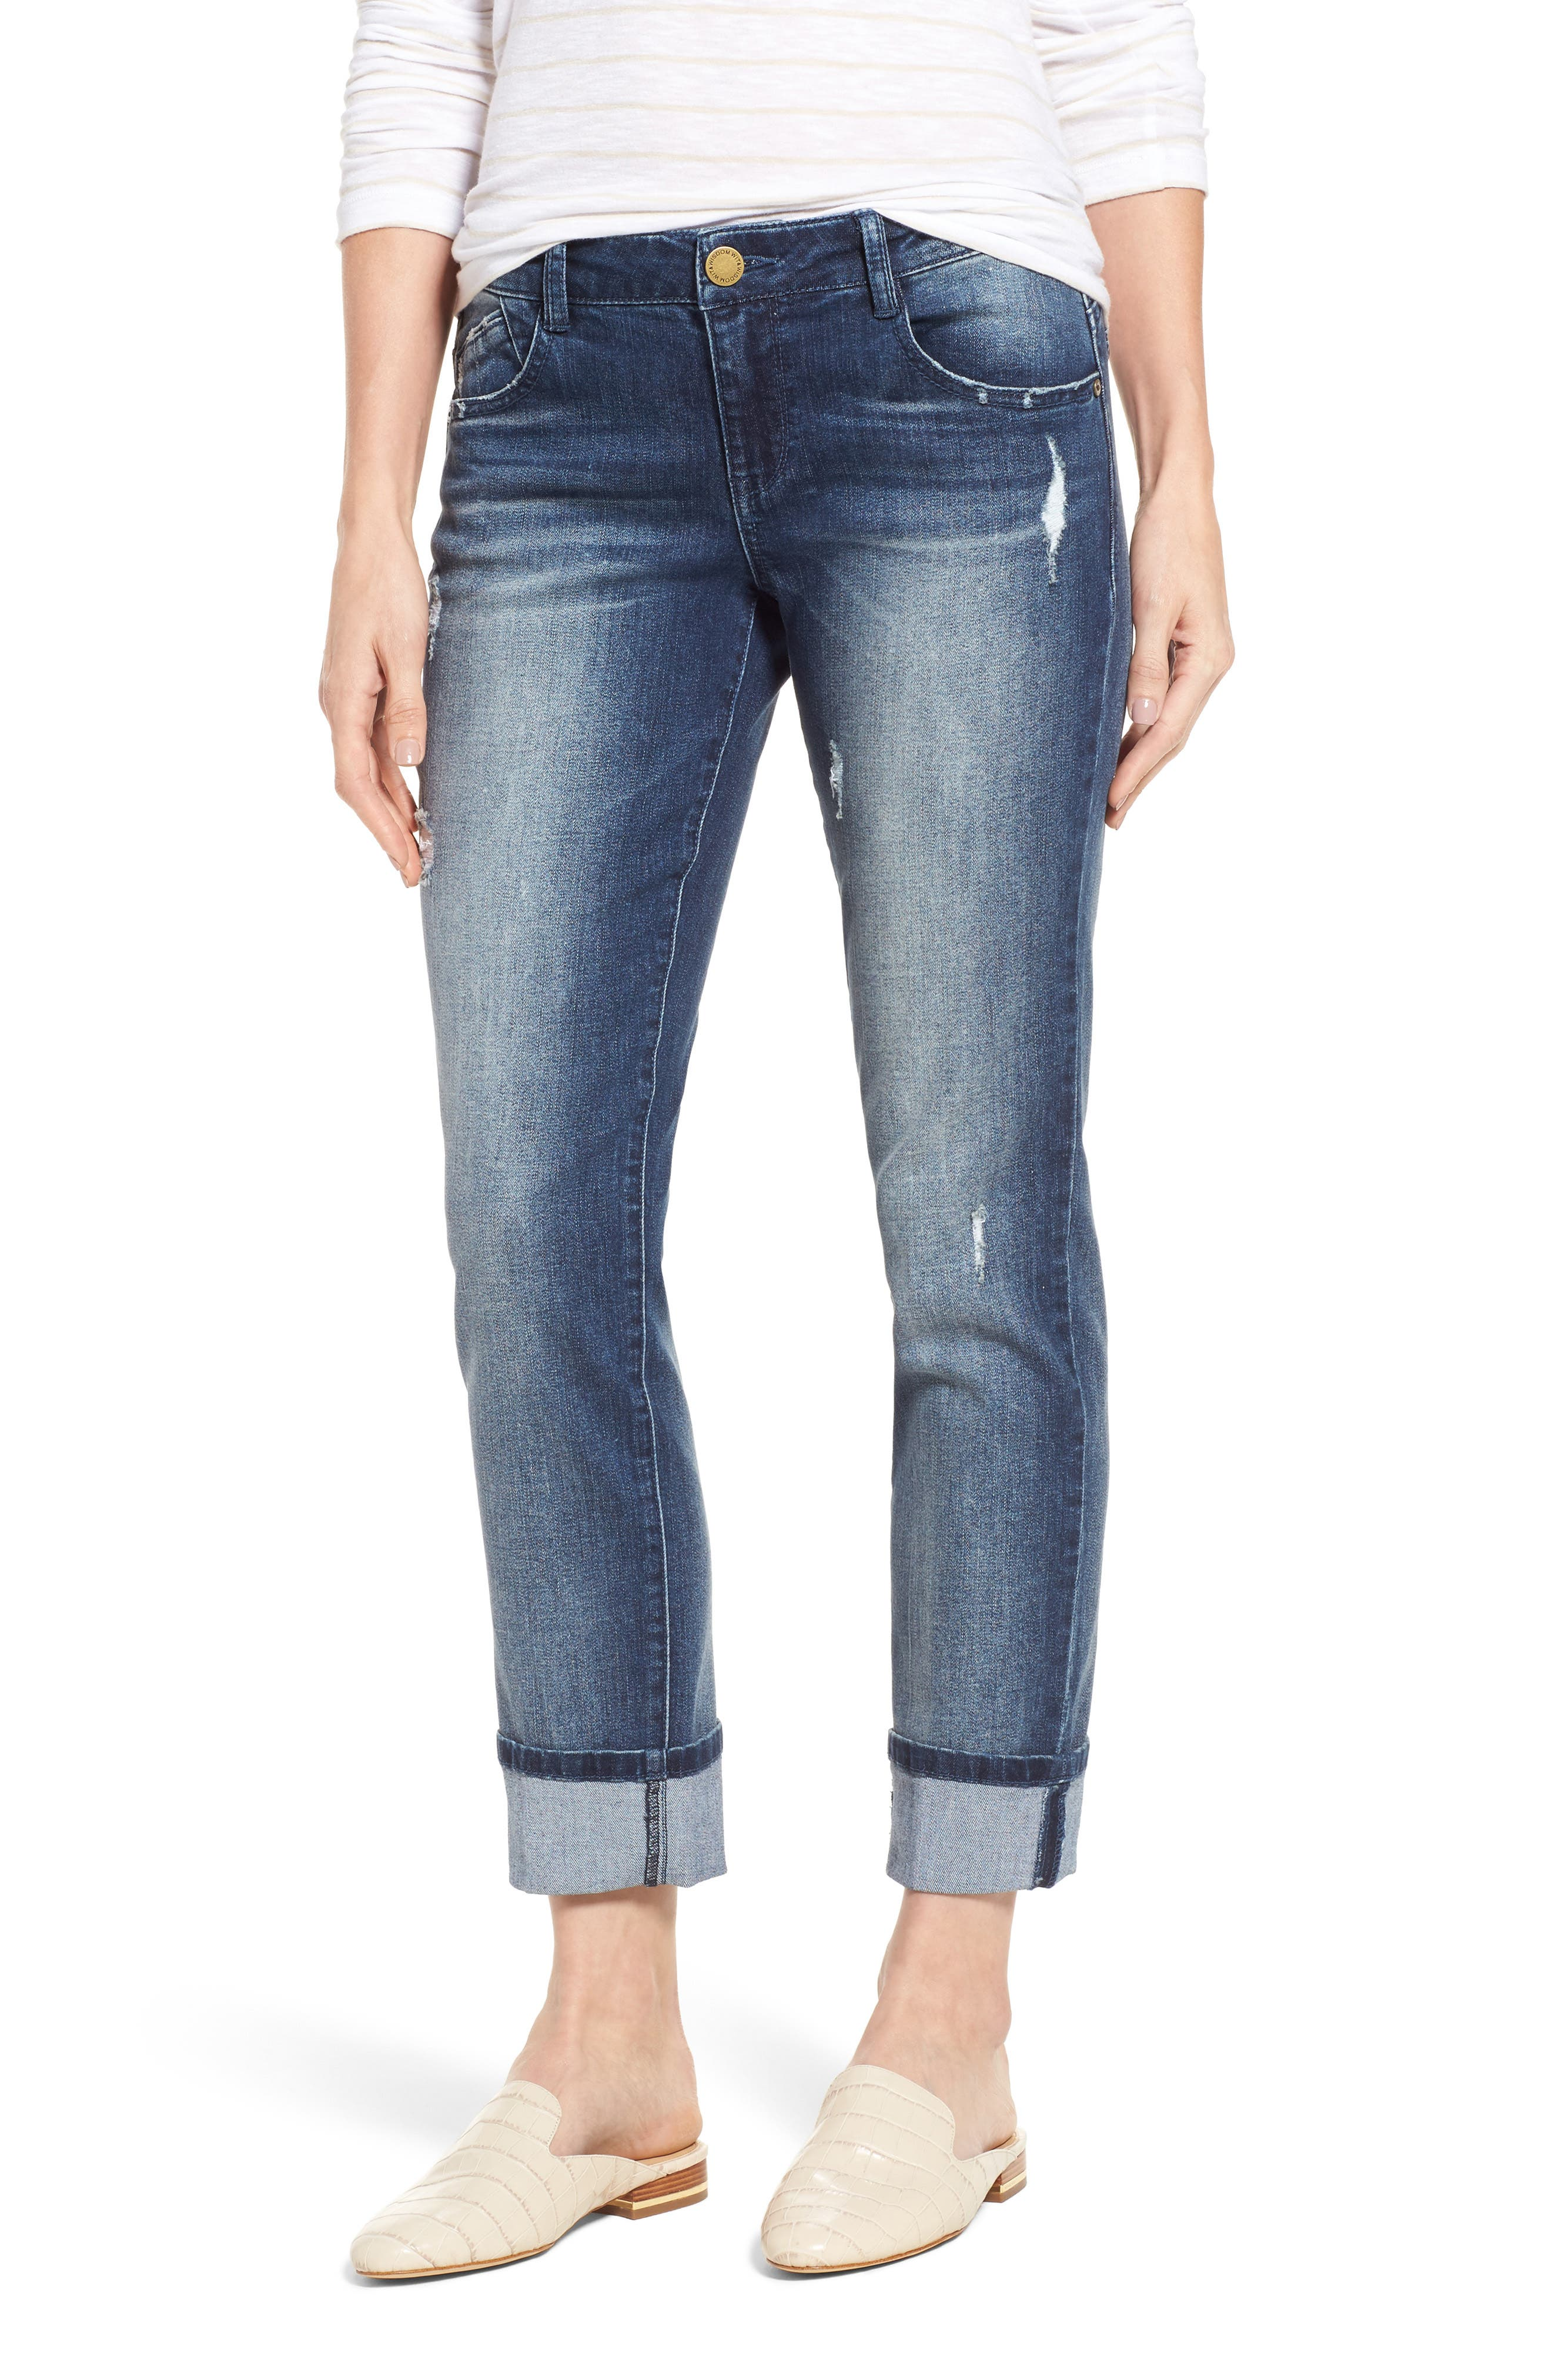 Wit & Wisdom Flex-ellent Ripped Boyfriend Jeans (Regular & Petite) (Nordstrom Exclusive)